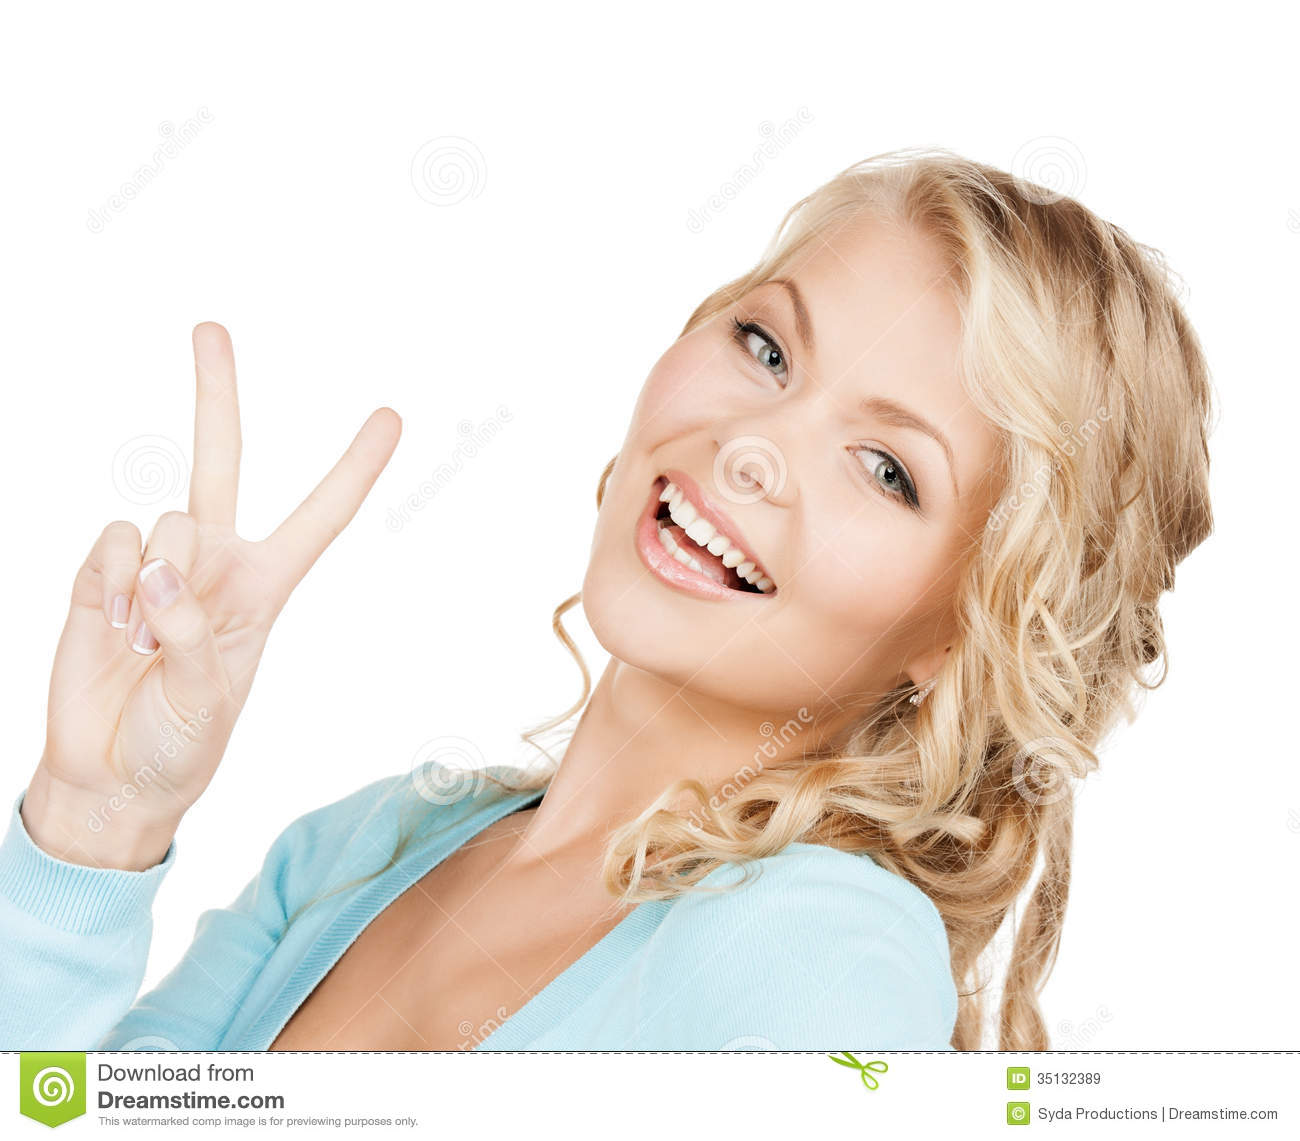 young-woman-showing-victory-peace-sign-h